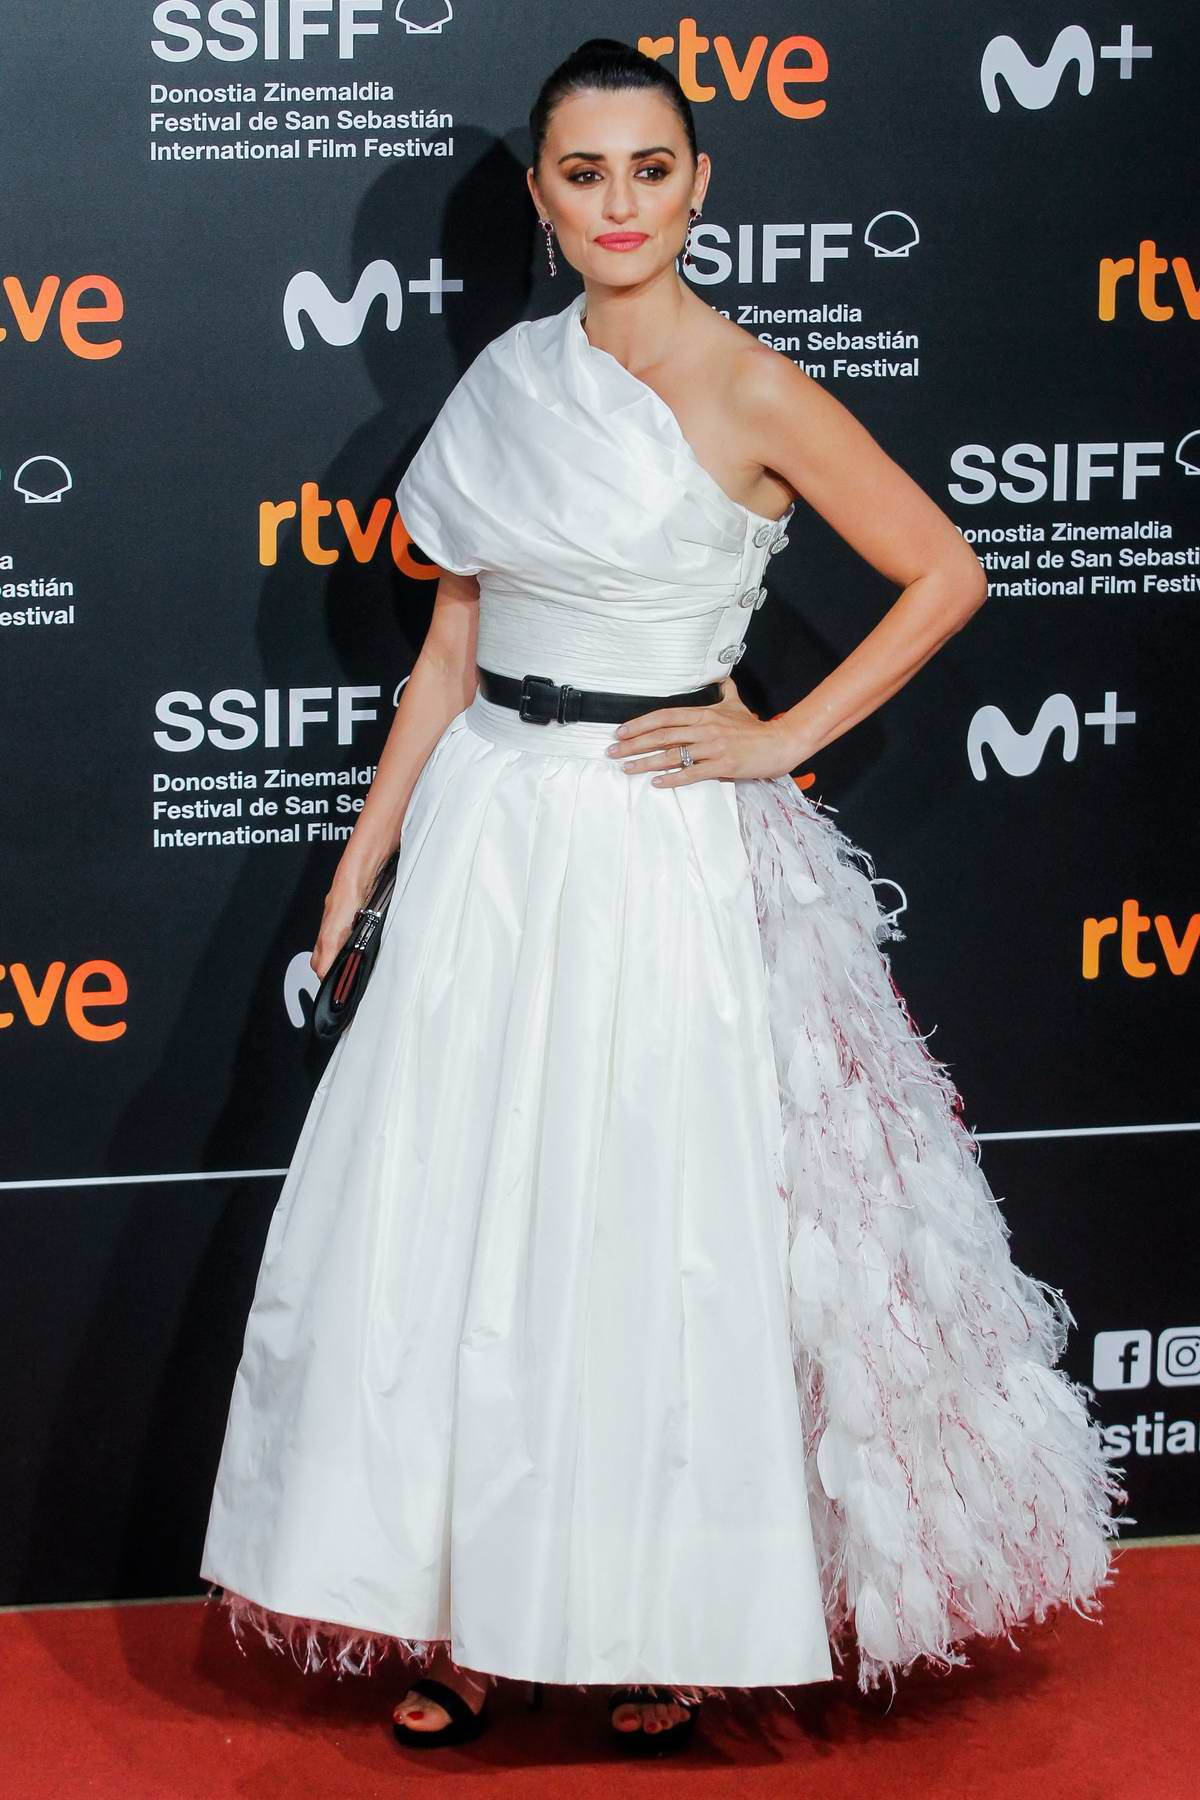 Penelope Cruz receives Donostia Award during 67th San Sebastian Film Festival at Kursaal Palace in San Sebastian, Spain